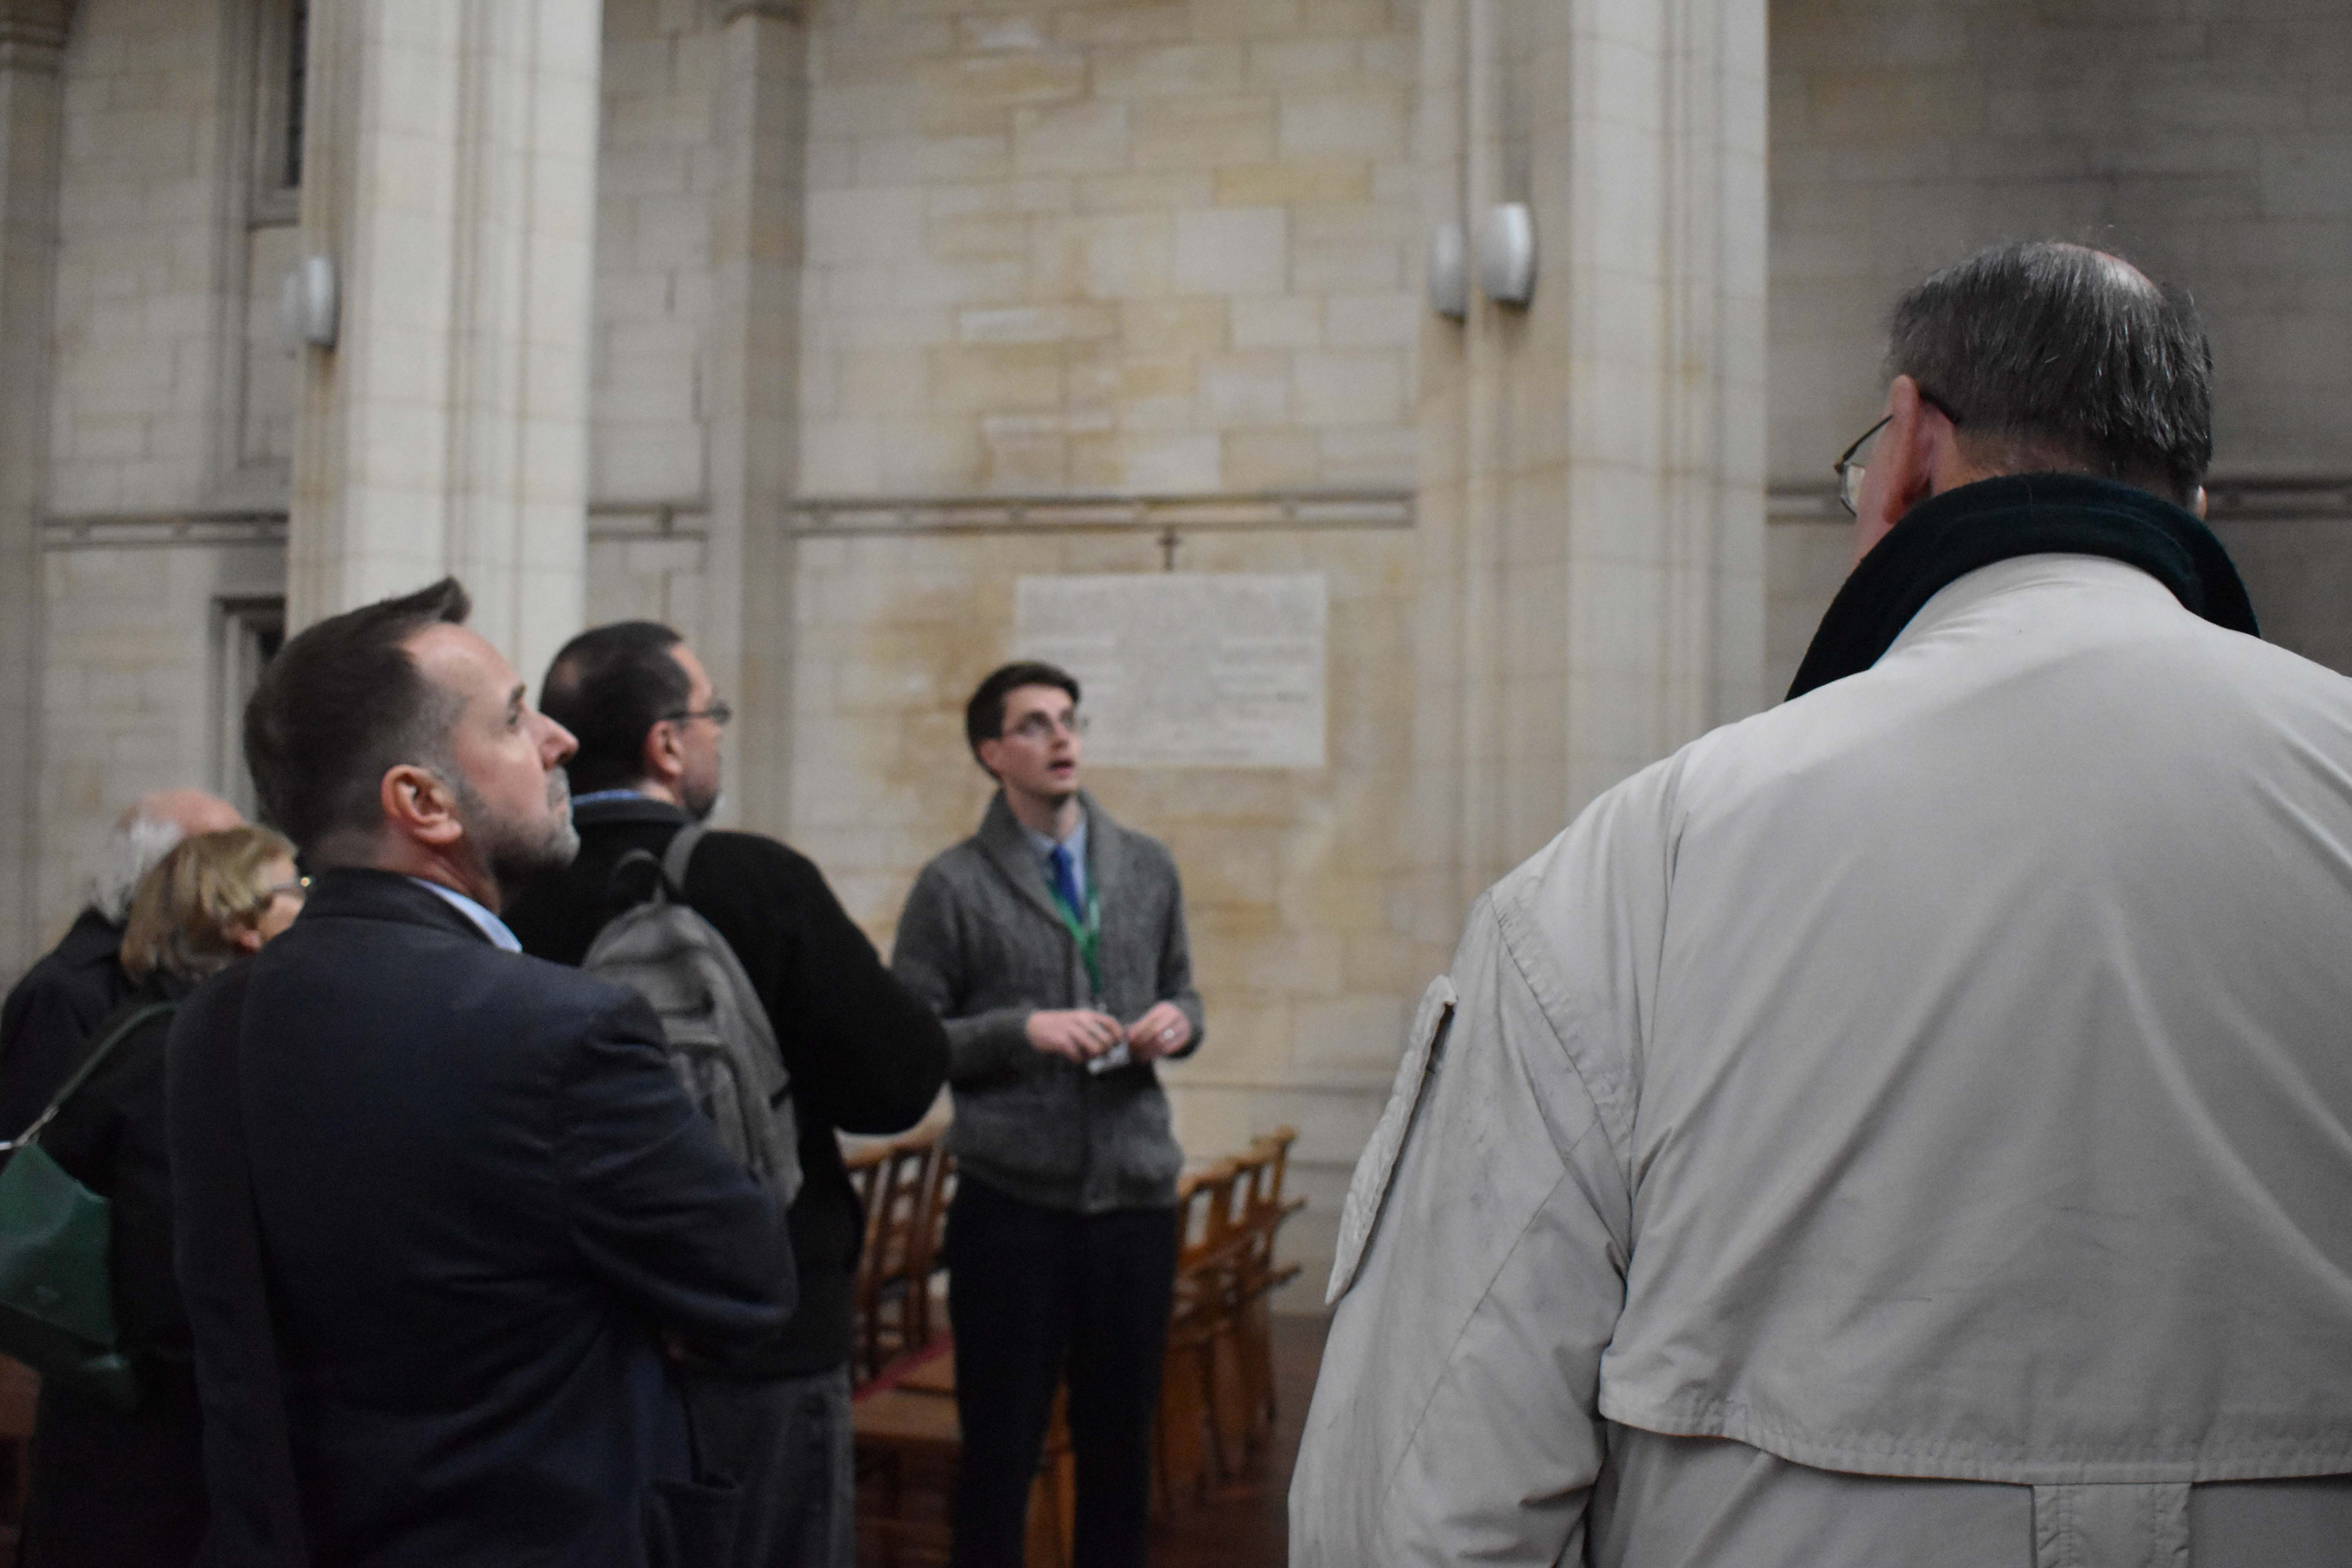 Downside Abbey Library Tour